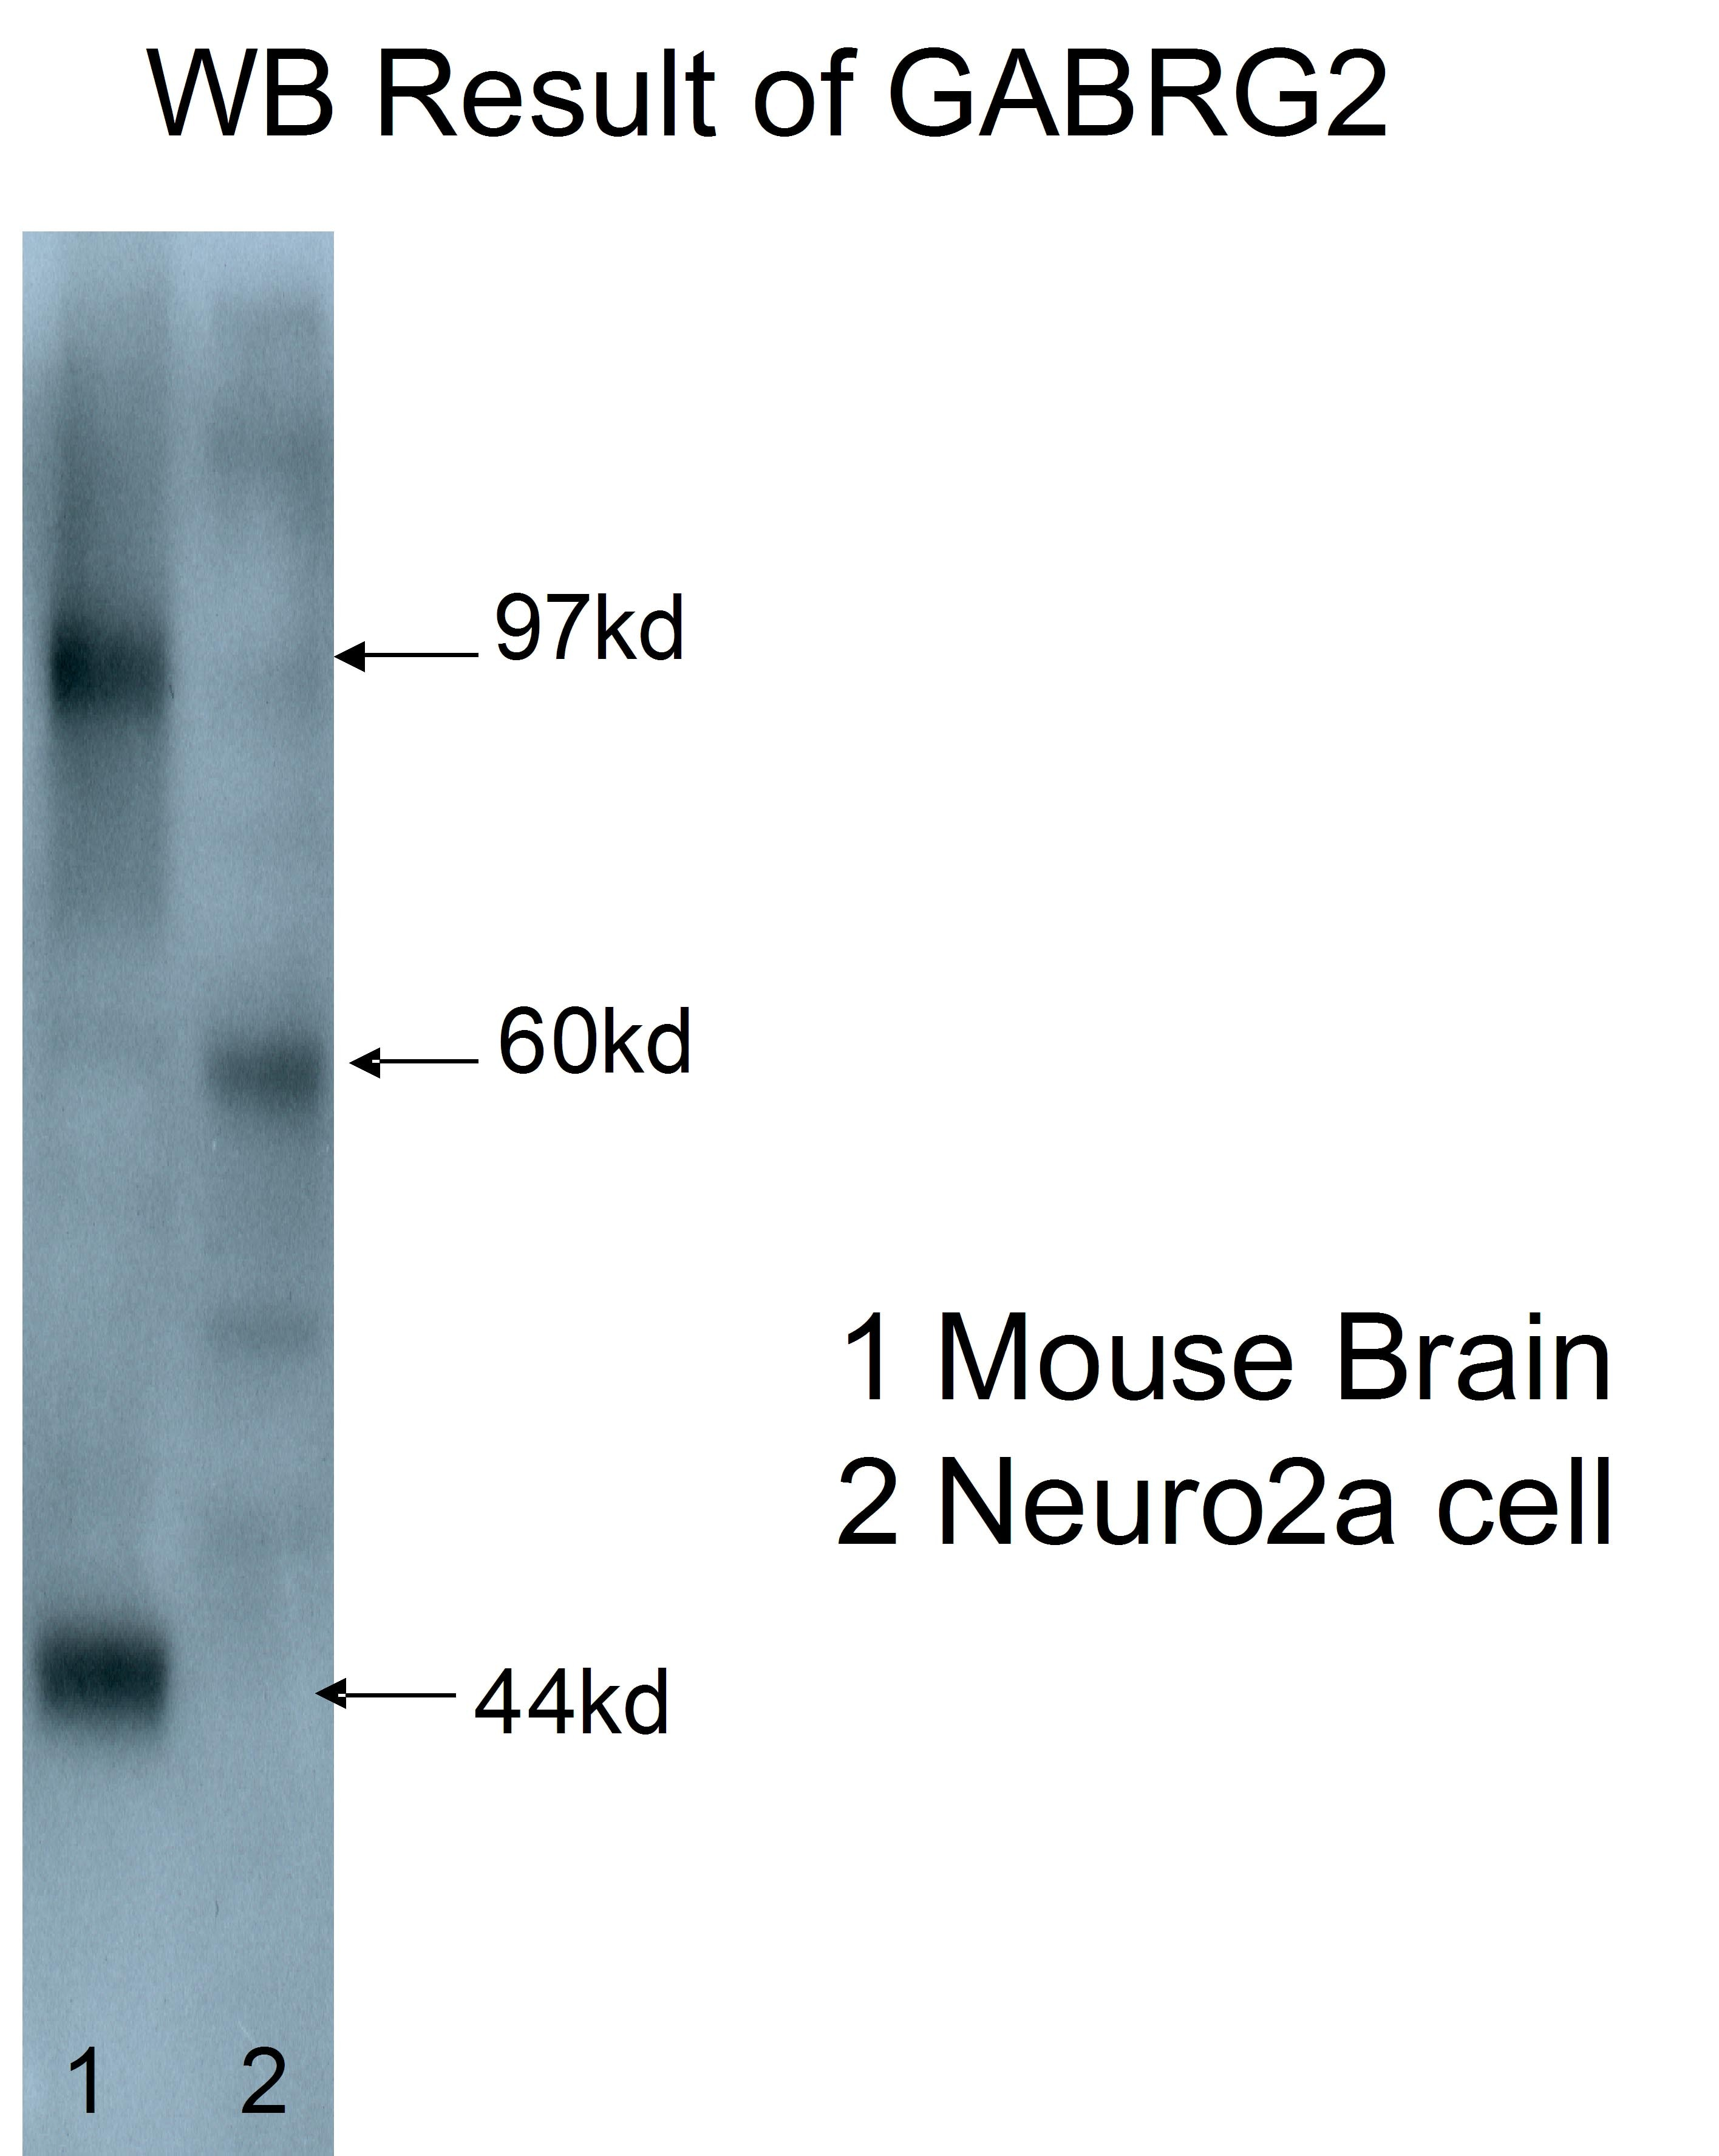 WB analysis of mouse brain/Neuro2a cells using 14104-1-AP